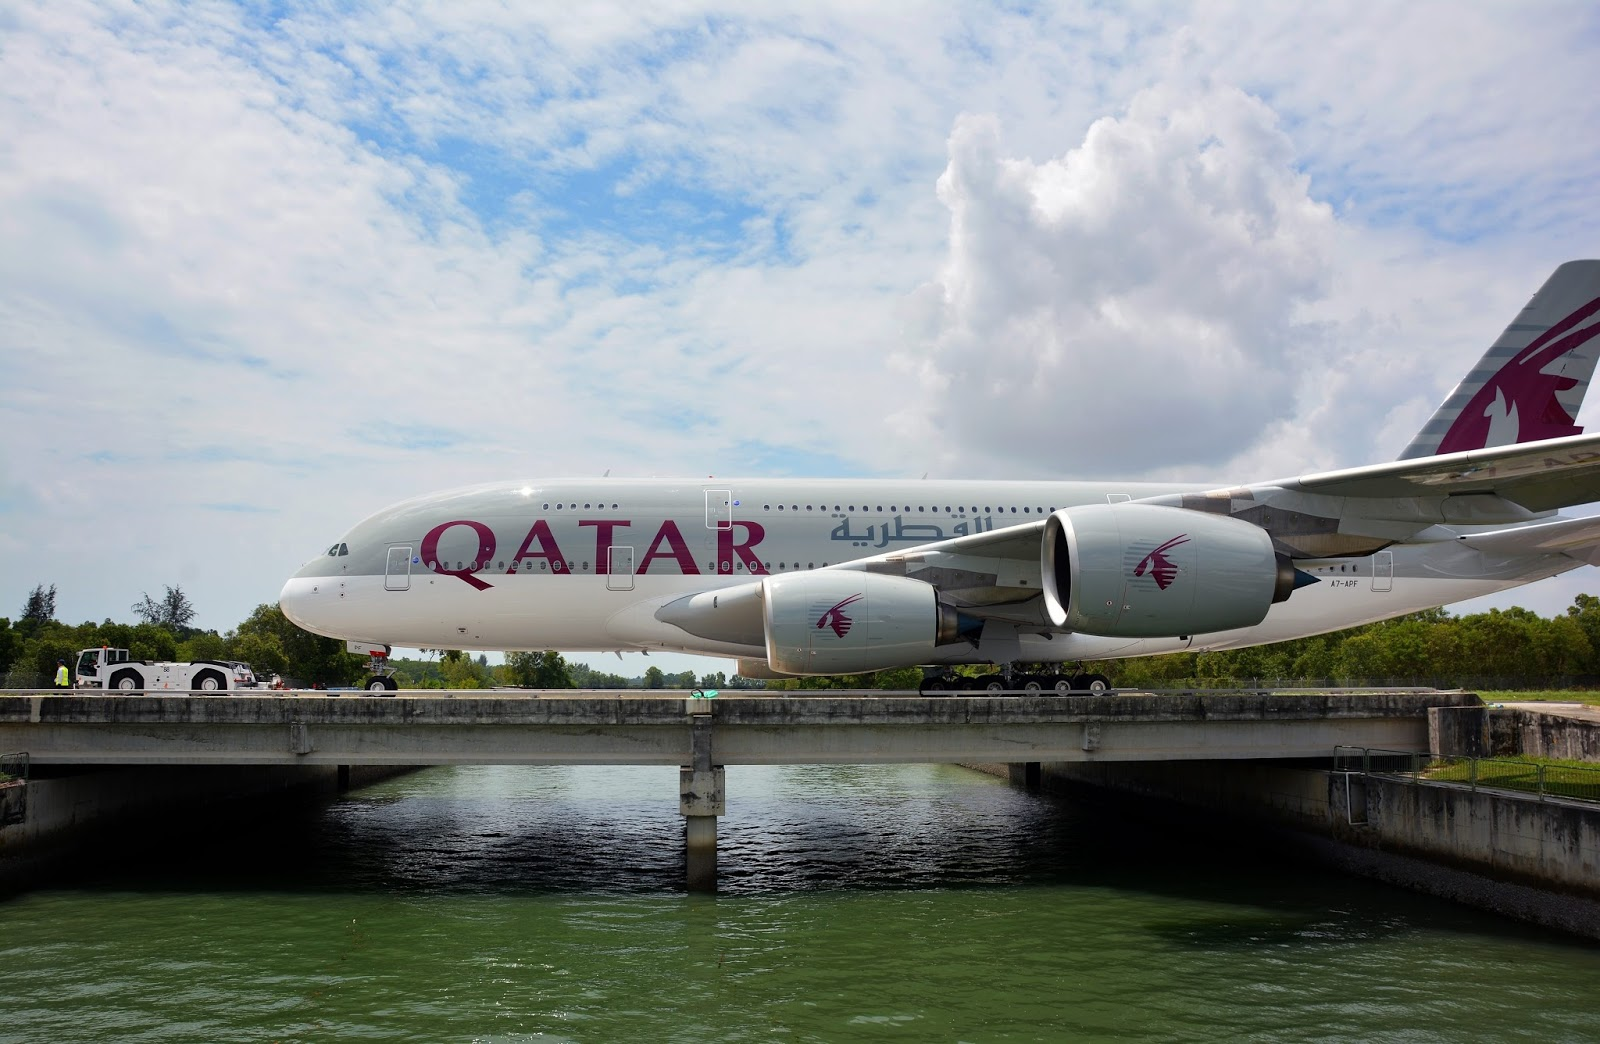 qatar airways airbus a380800 is being towed in singapore